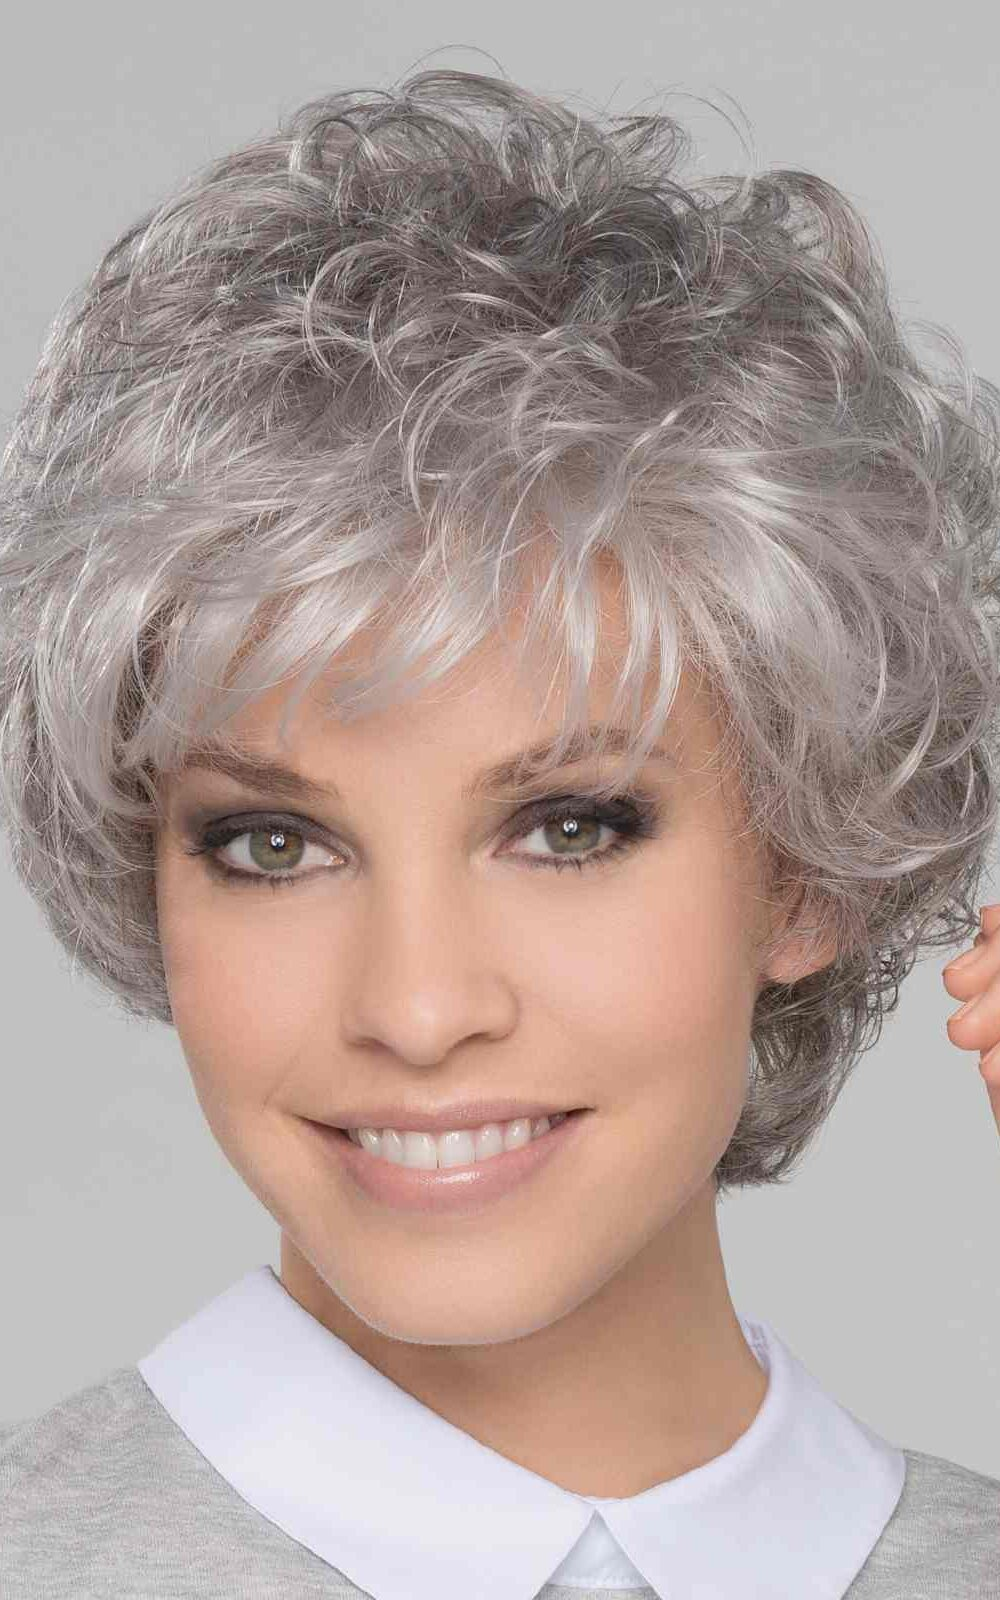 City   Synthetic Lace Front Wig (Wefted Cap) by Ellen Wille   Snow Mix   Elly-K.com.au